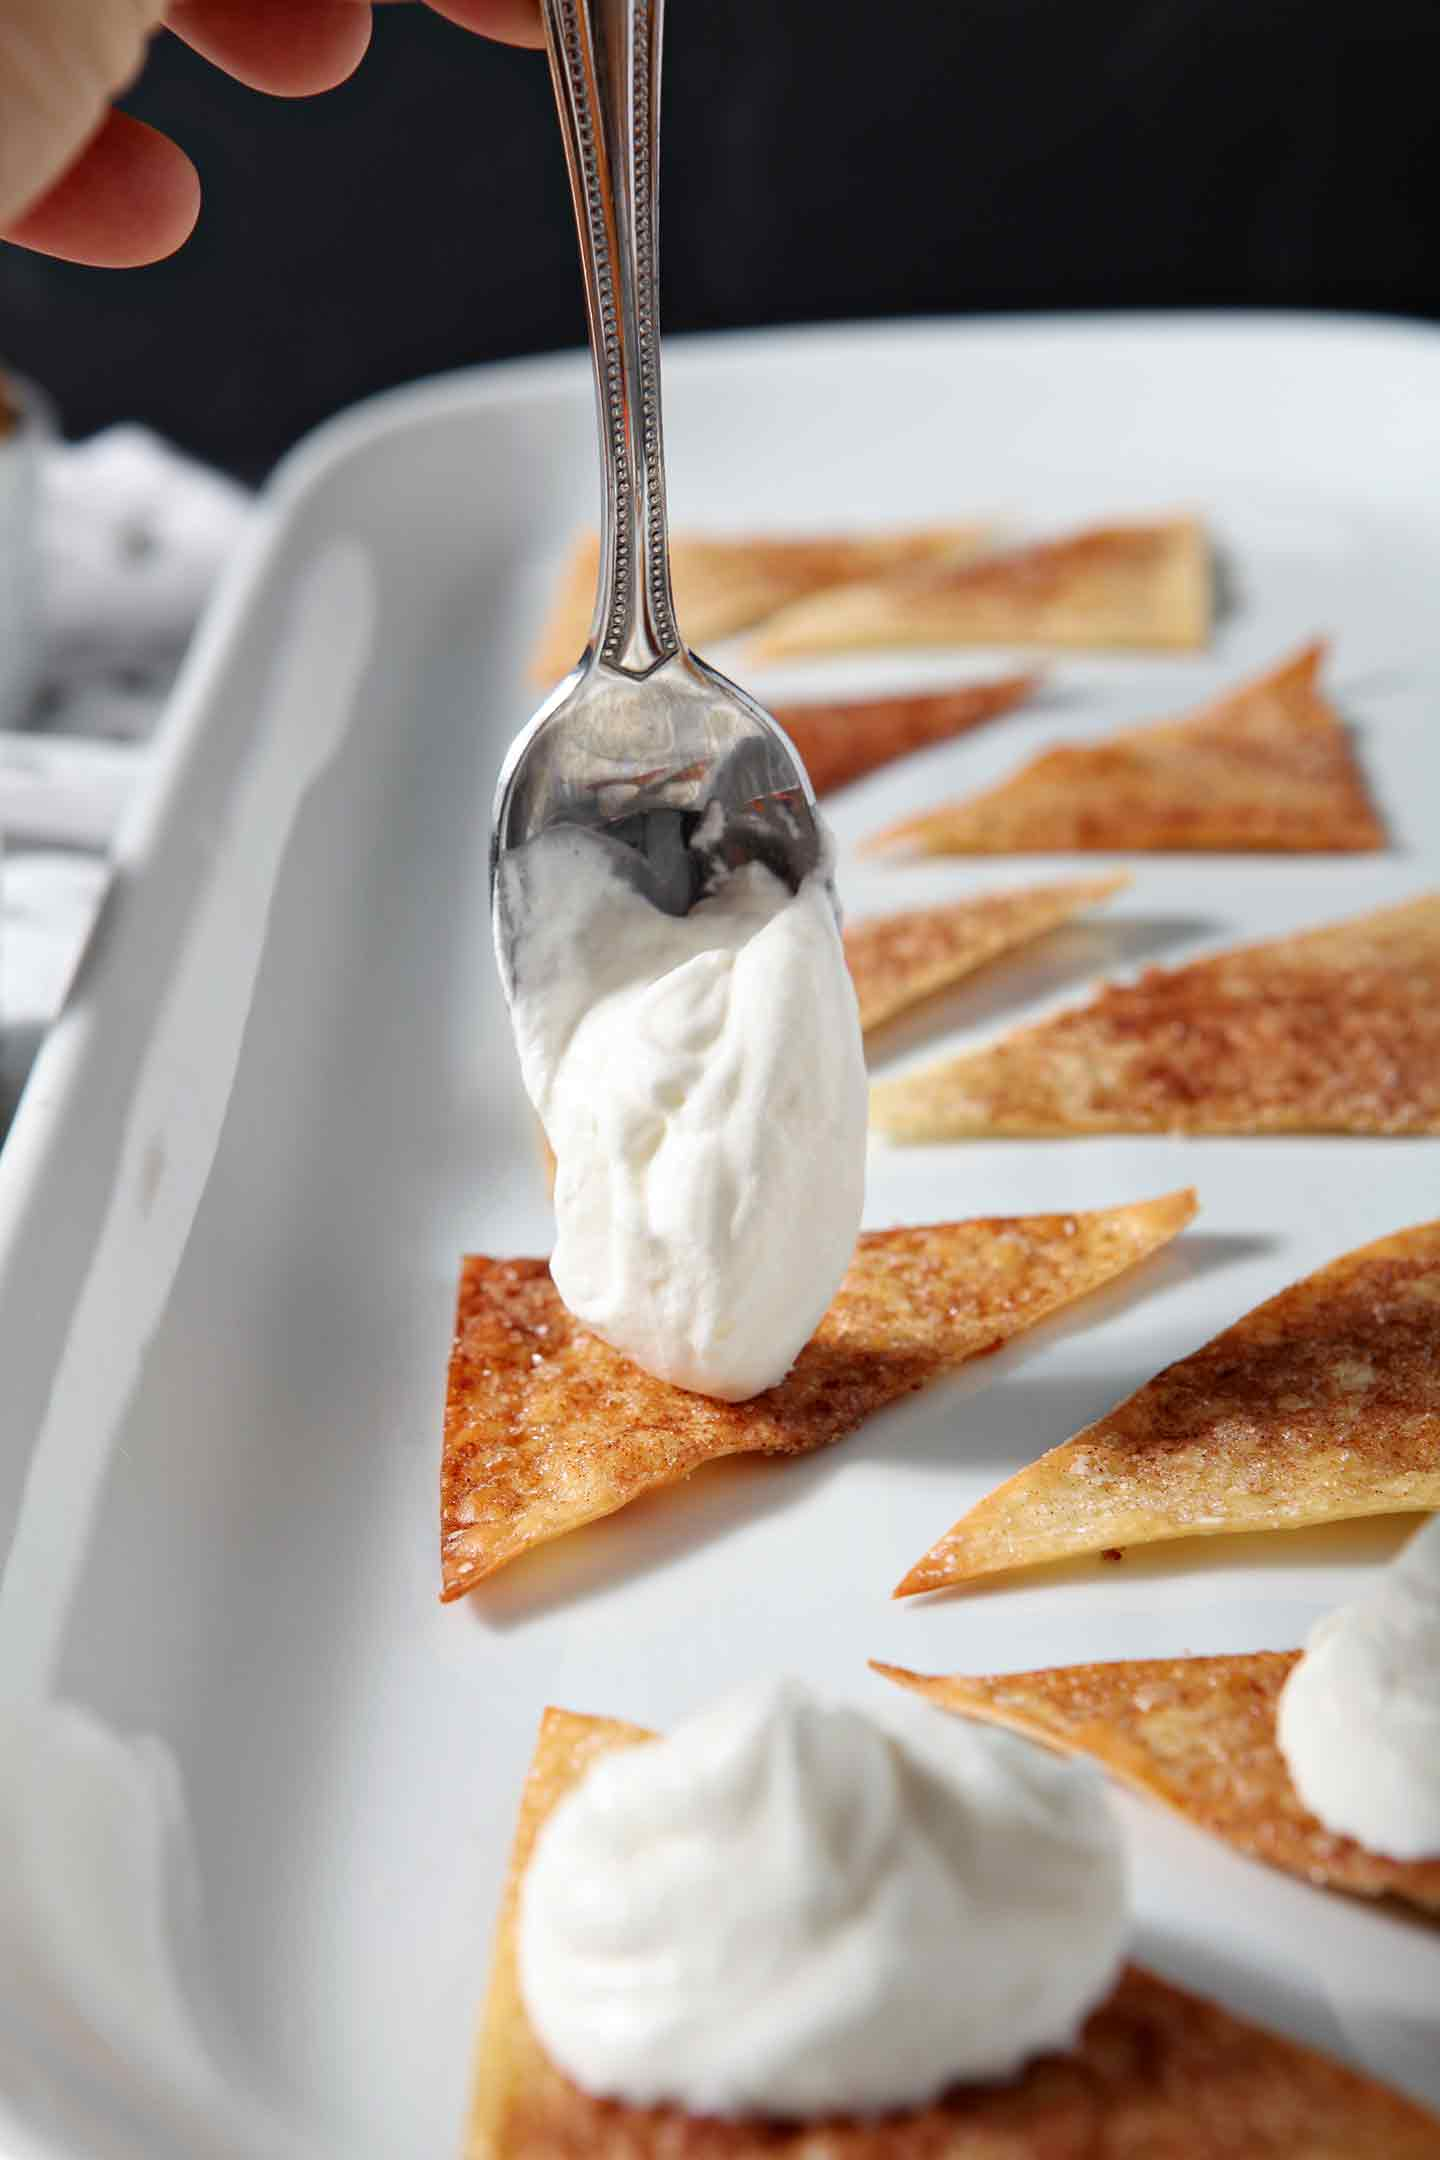 Sweetened whipped cream is dolloped onto Cinnamon-Sugar Wonton Chips to make the base for Halloween Dessert Nachos